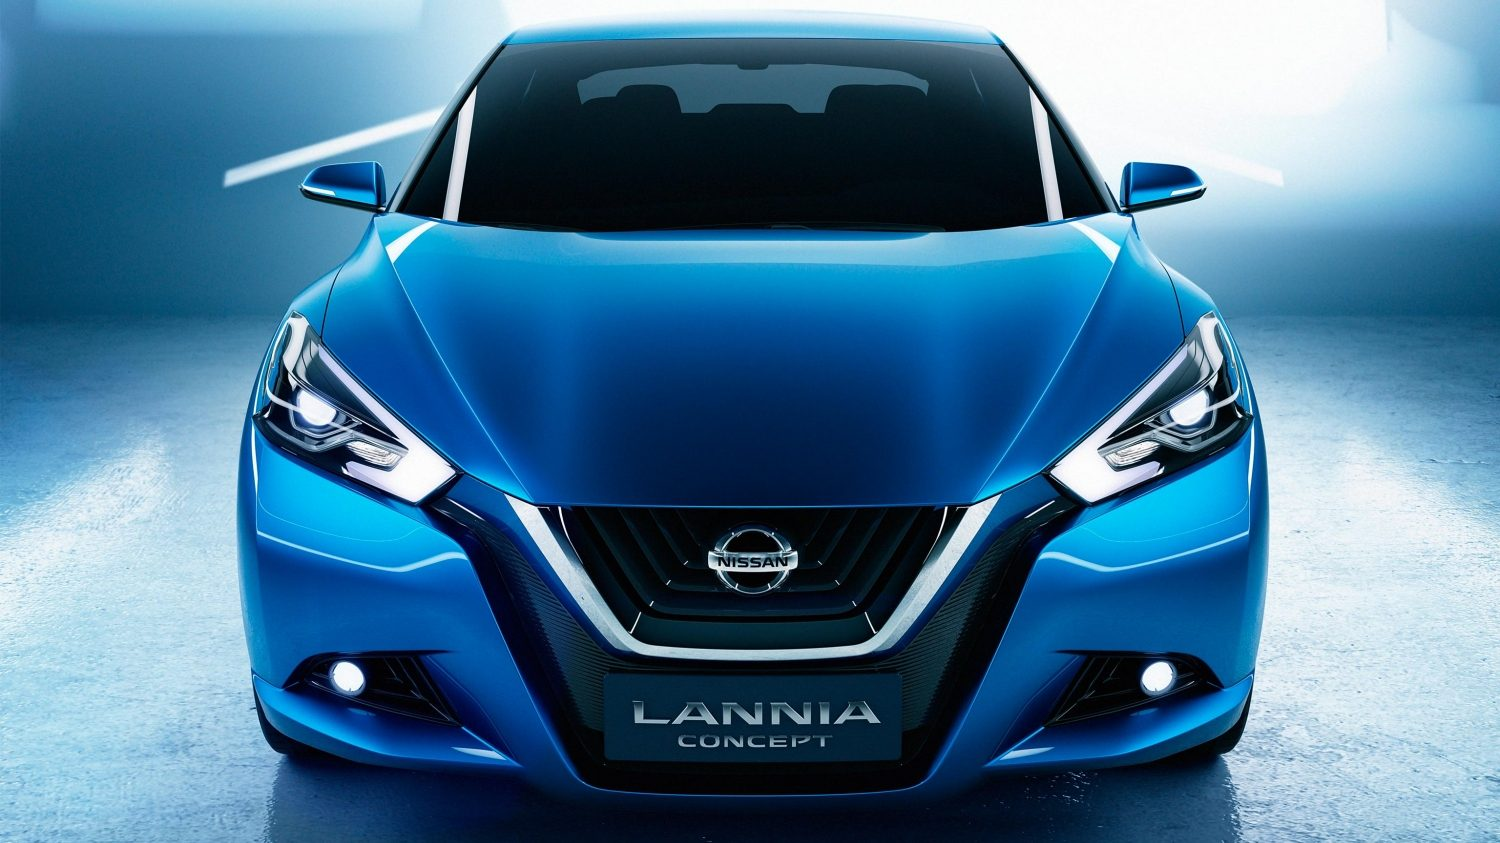 Nissan Lannia Concept. Gallery straight front studio.